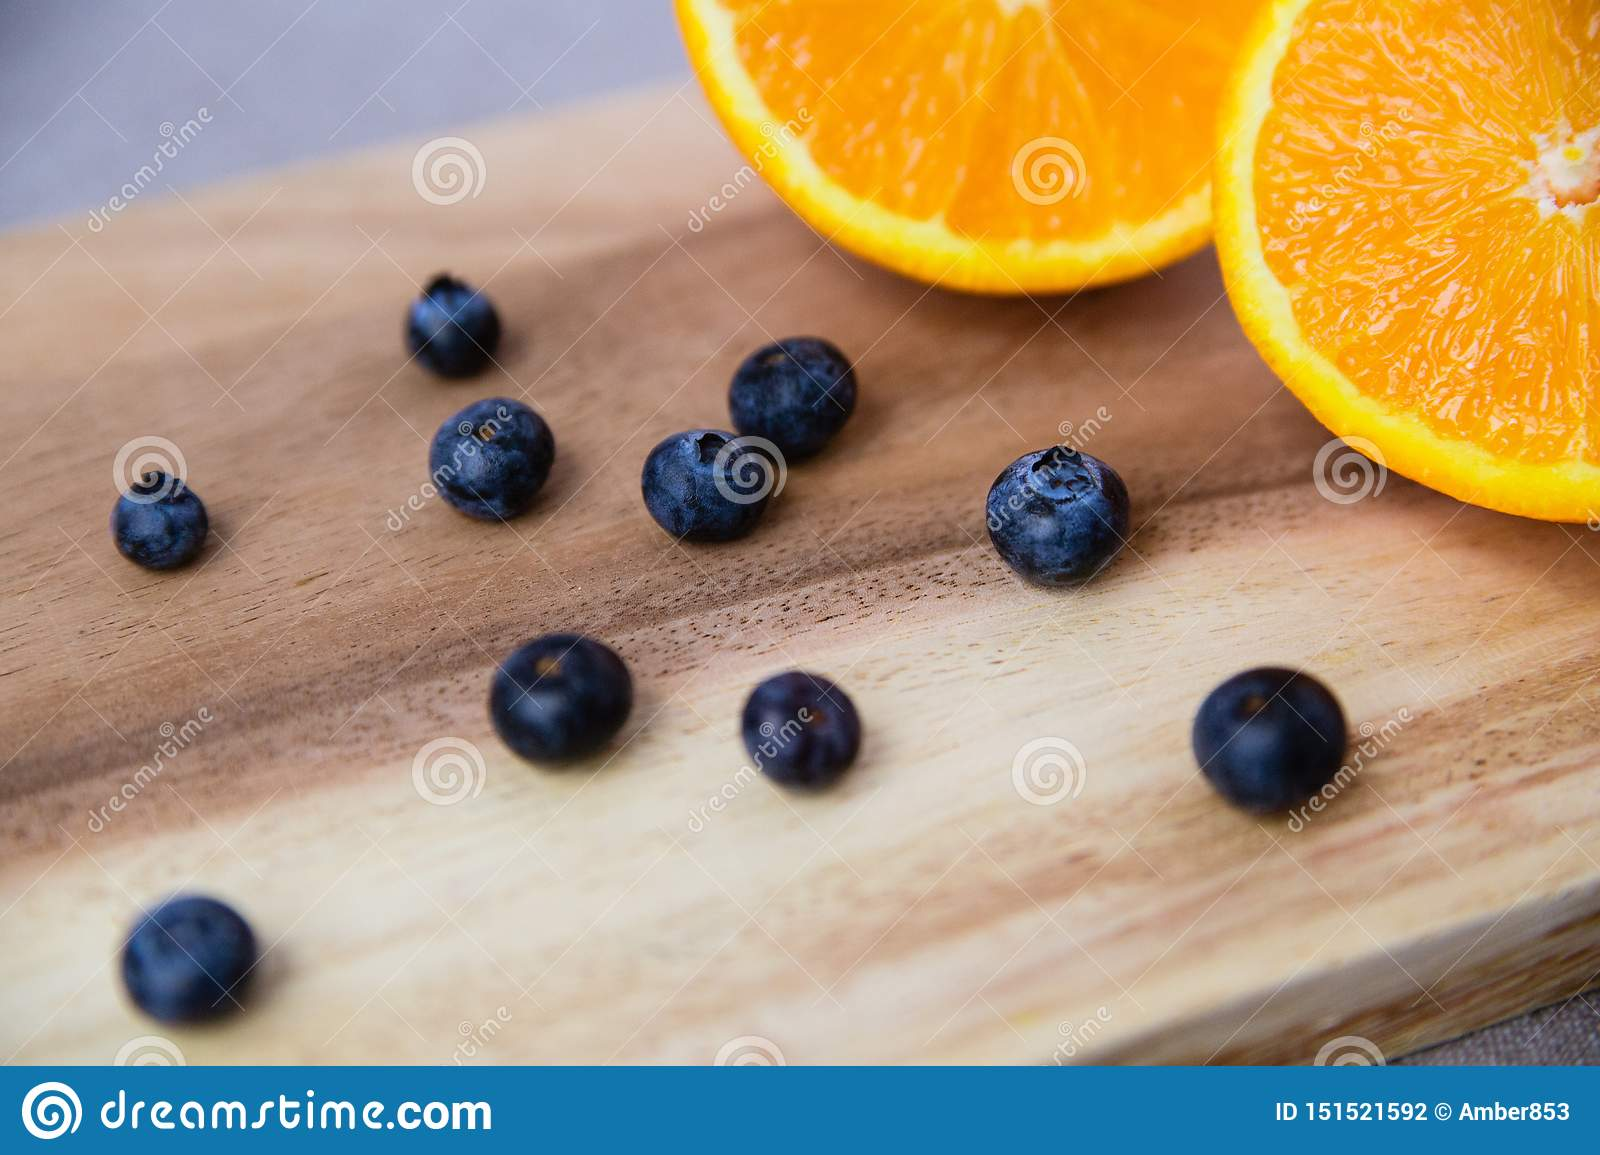 Orange and blueberries on Wooden Cutting Board